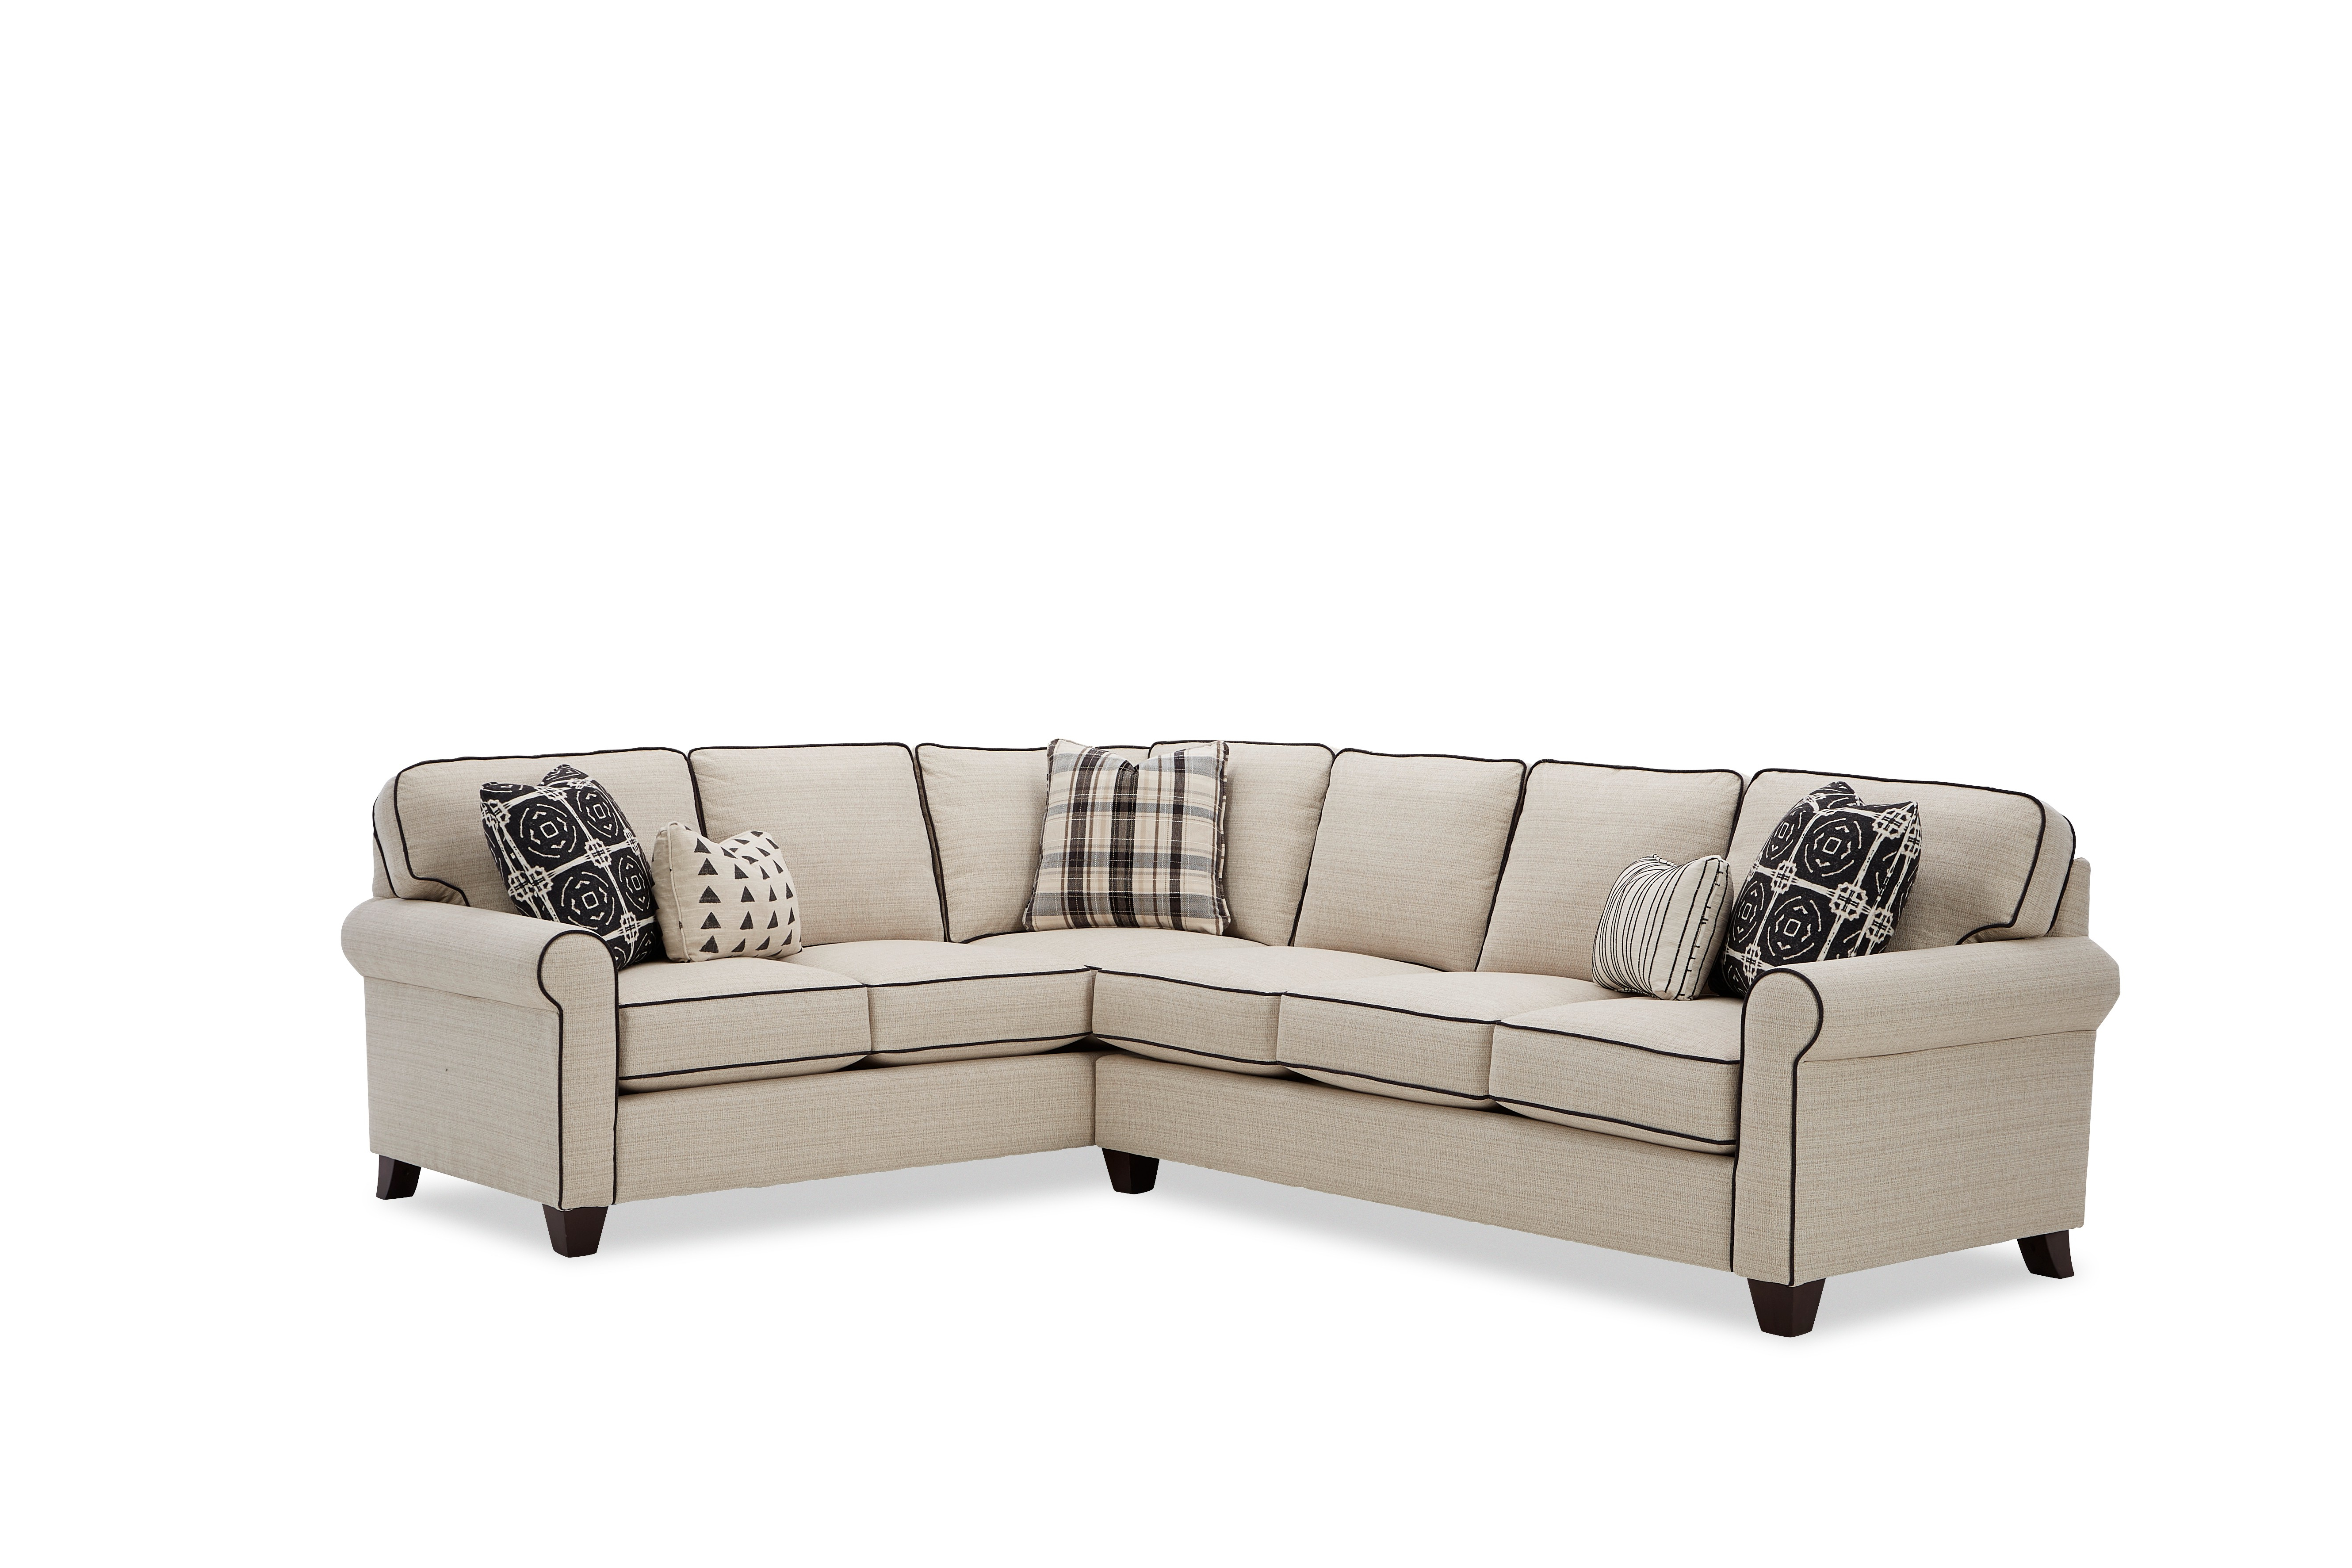 717450 5-Seat Sectional Sofa w/ LAF Return Sofa by Craftmaster at Esprit Decor Home Furnishings